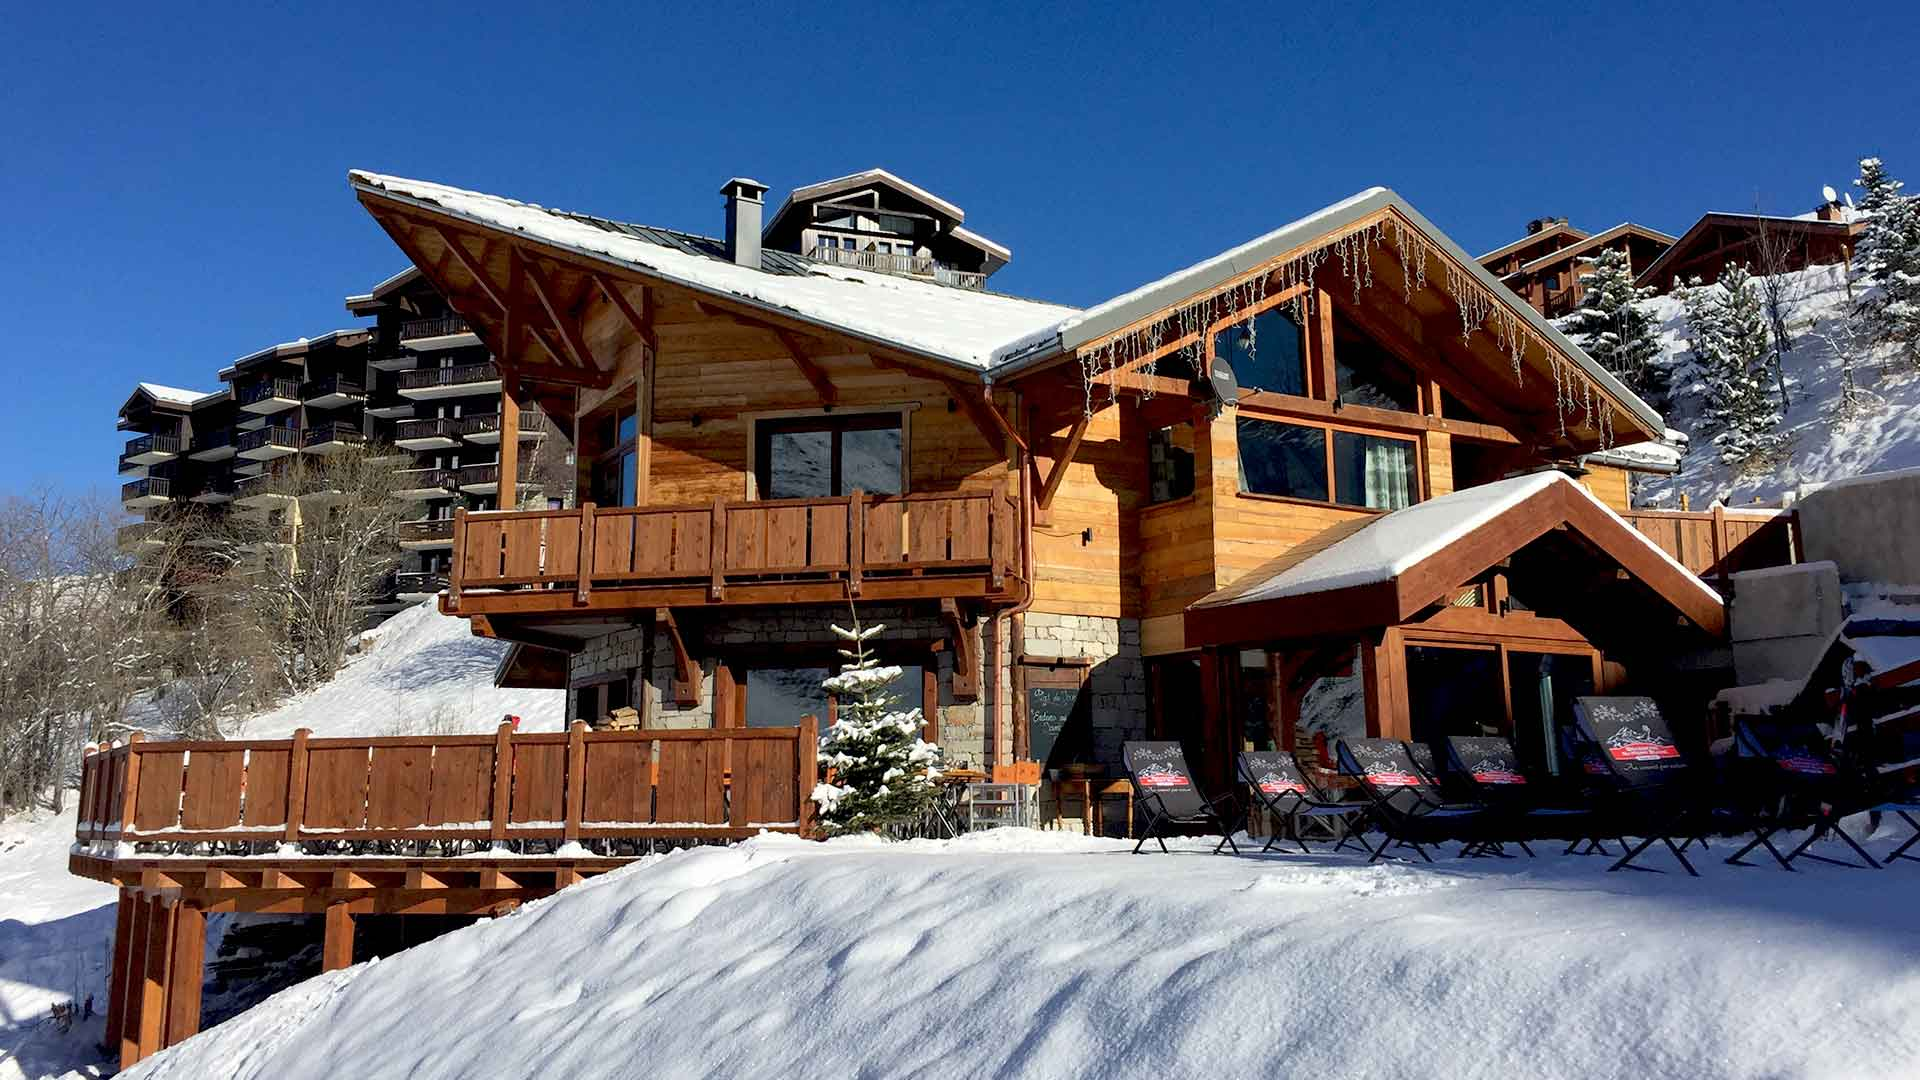 Location chalet ski nouvel an